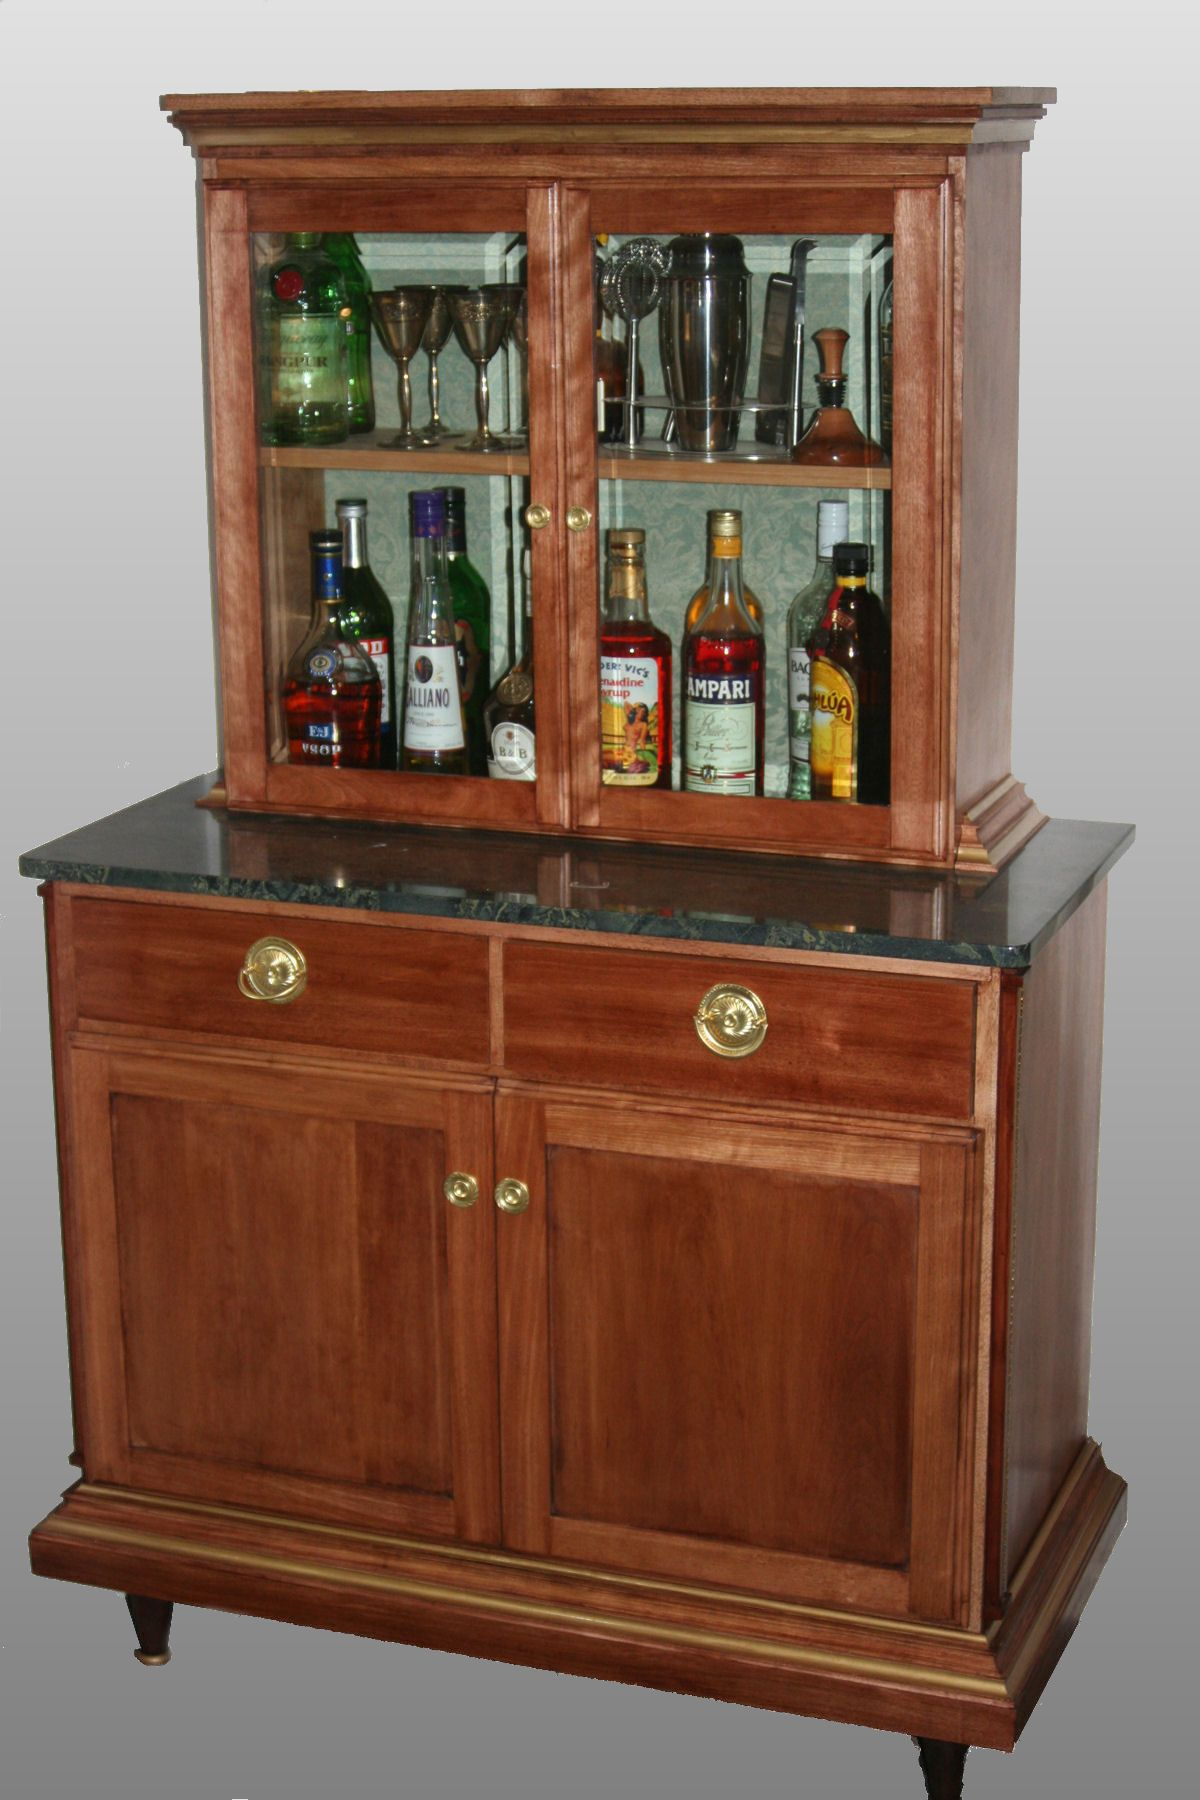 Liquor Cabinet Bar Furniture #29: 1000+ Images About Furniture On Pinterest | Cheap Liquor, Liquor Cabinet And Chic